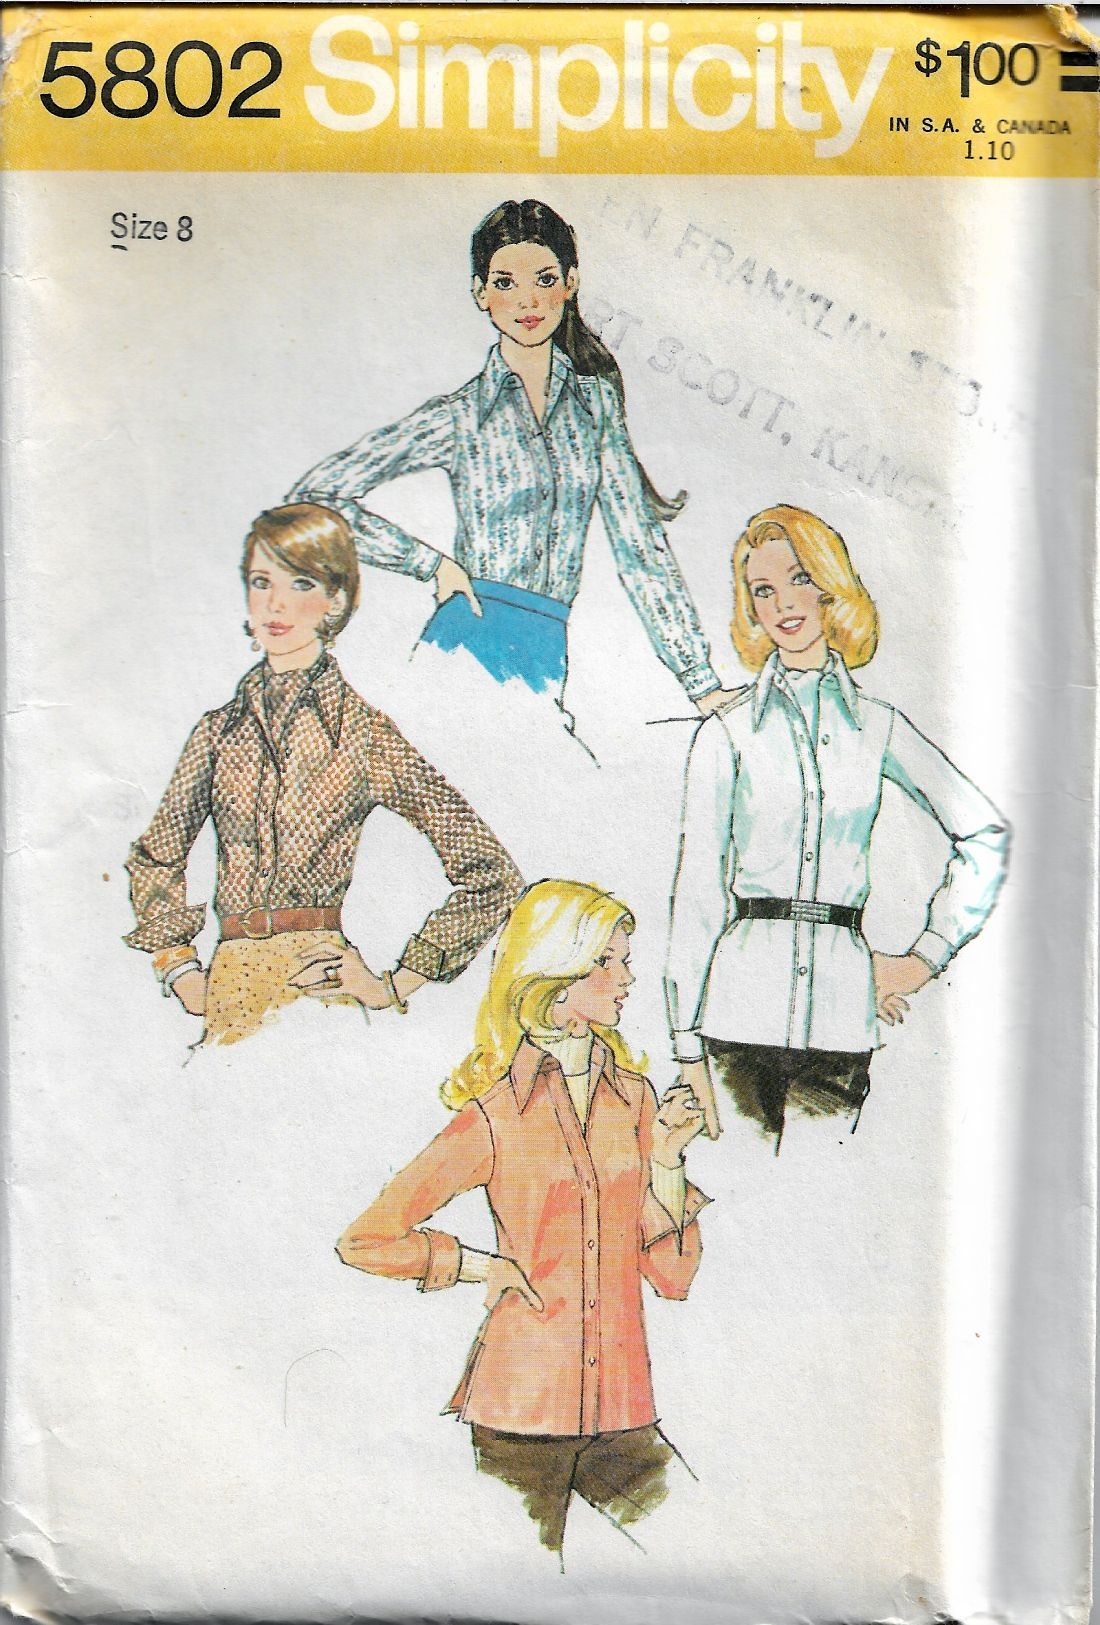 Simplicity 5802 Ladies Blouse Ascot Tie Vintage 1970's Sewing Pattern - VintageStitching - Vintage Sewing Patterns